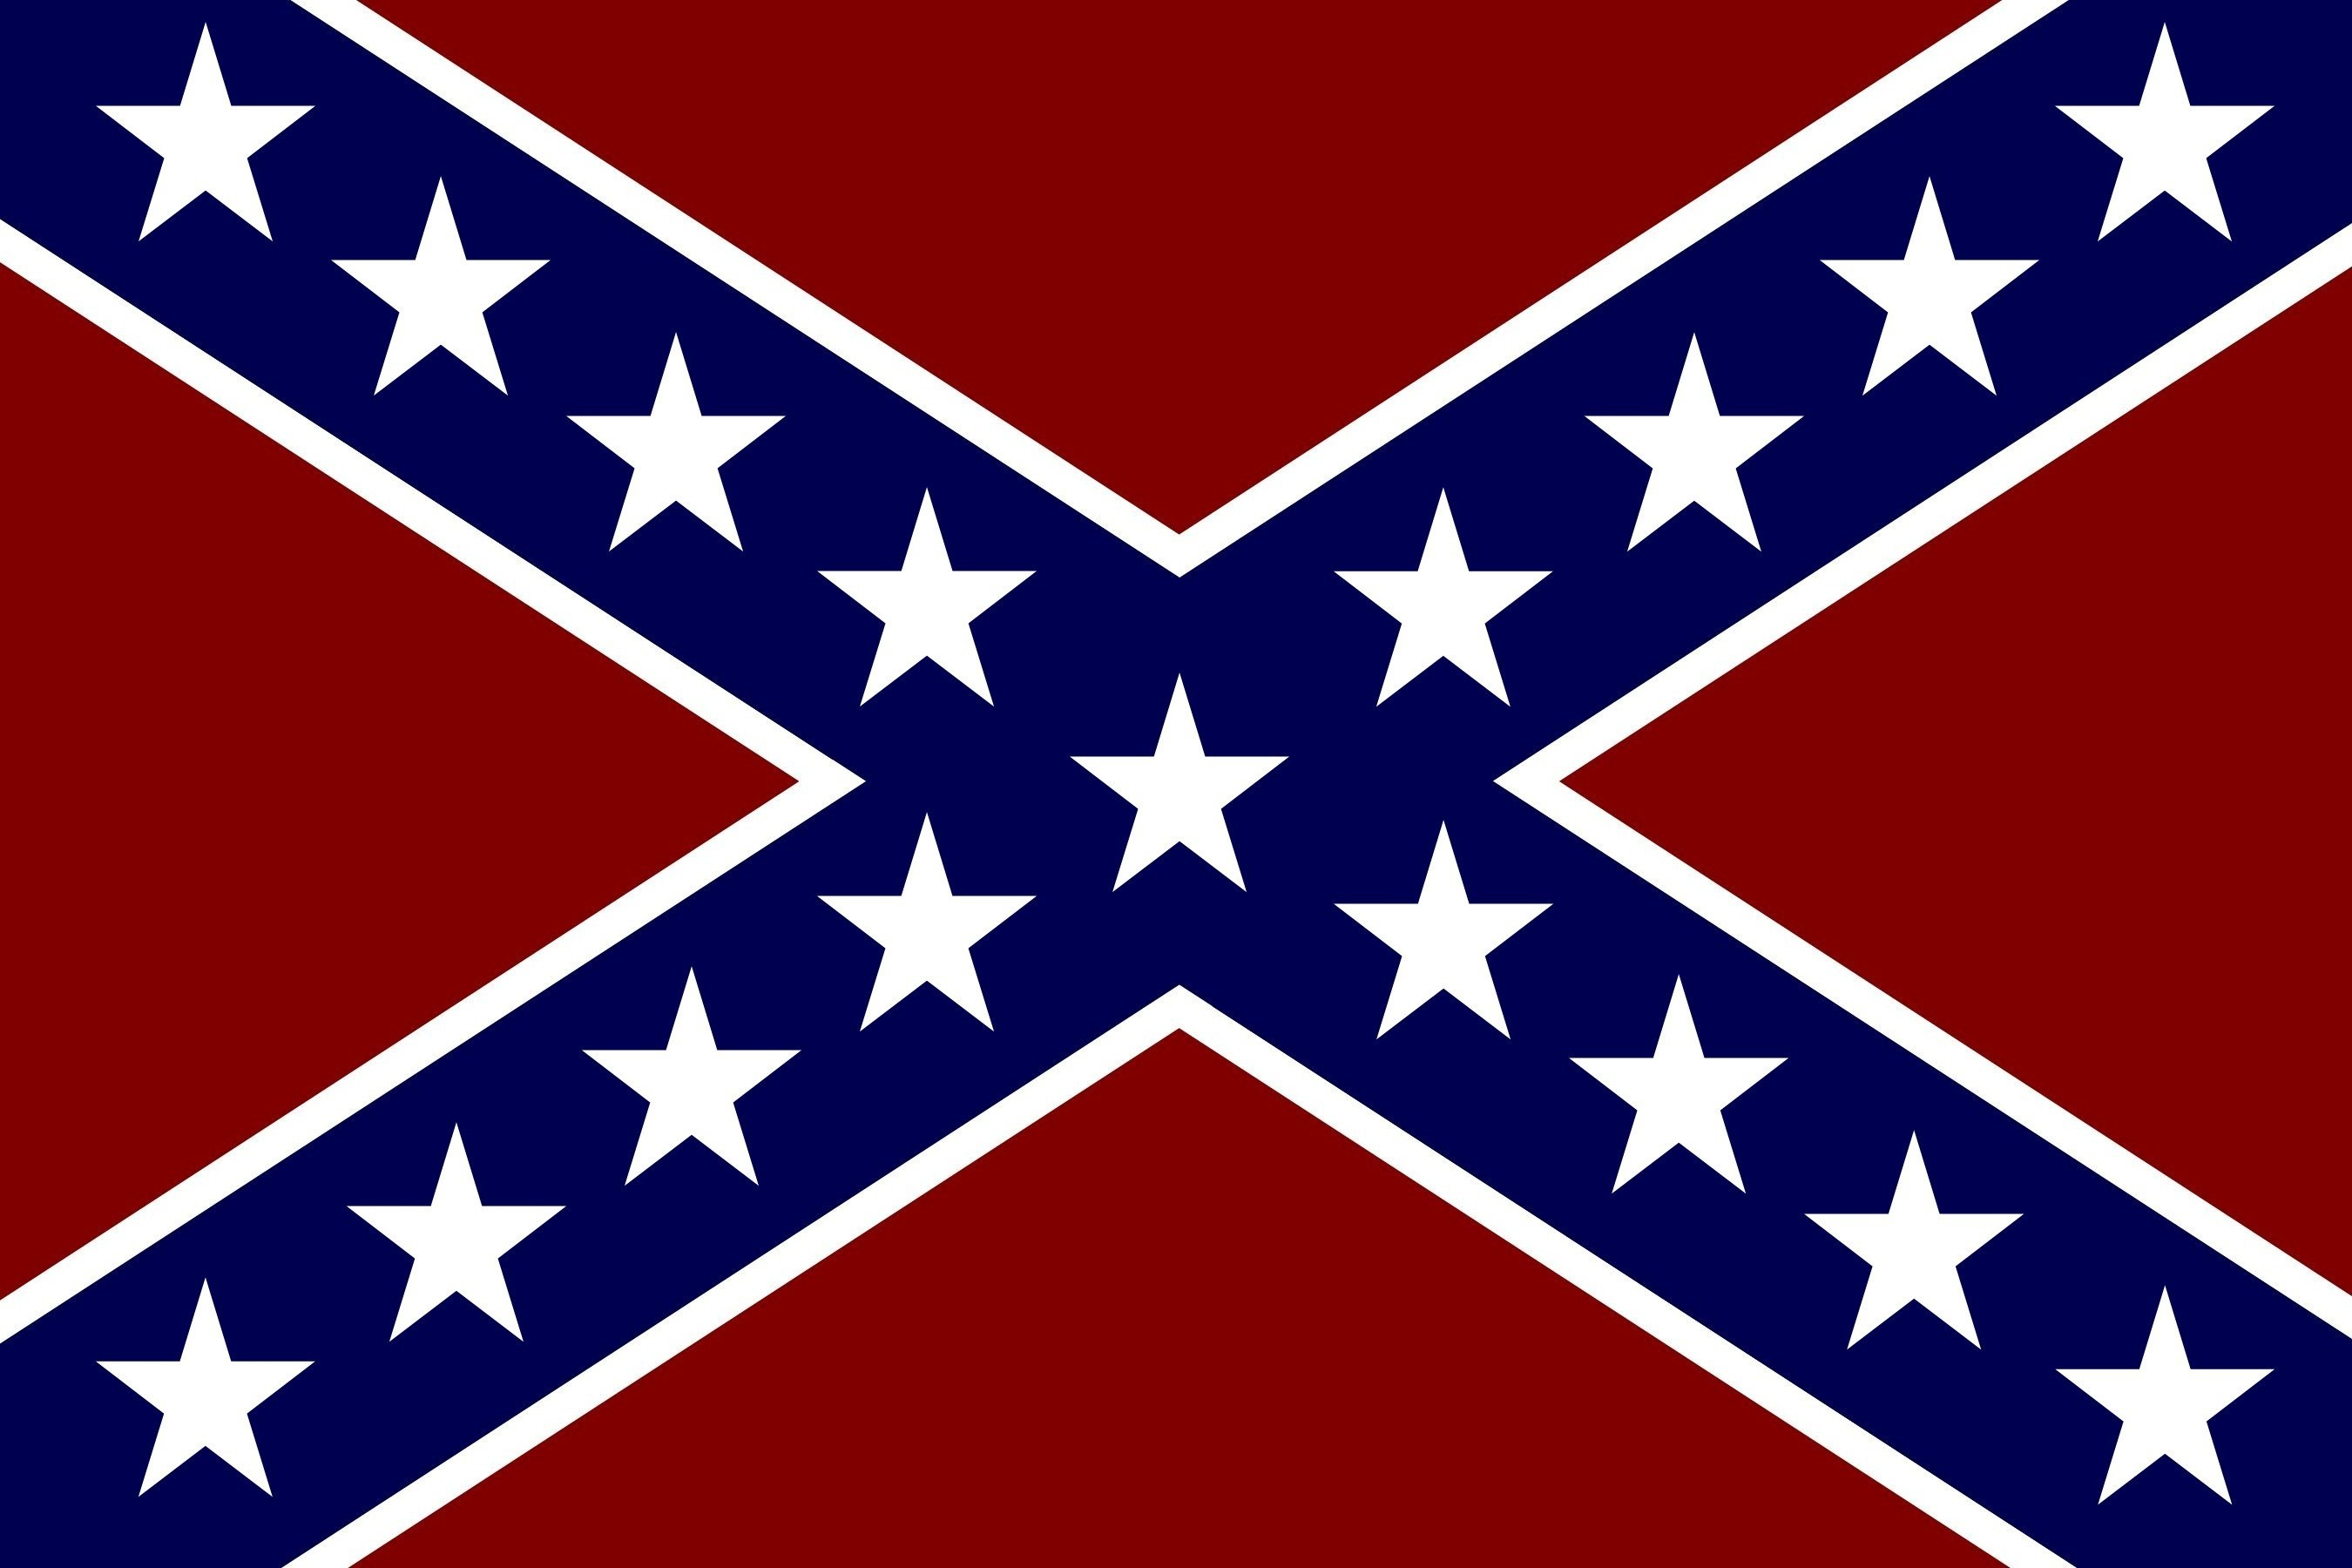 2700x1800 CONFEDERATE flag usa america united states csa civil war rebel dixie .